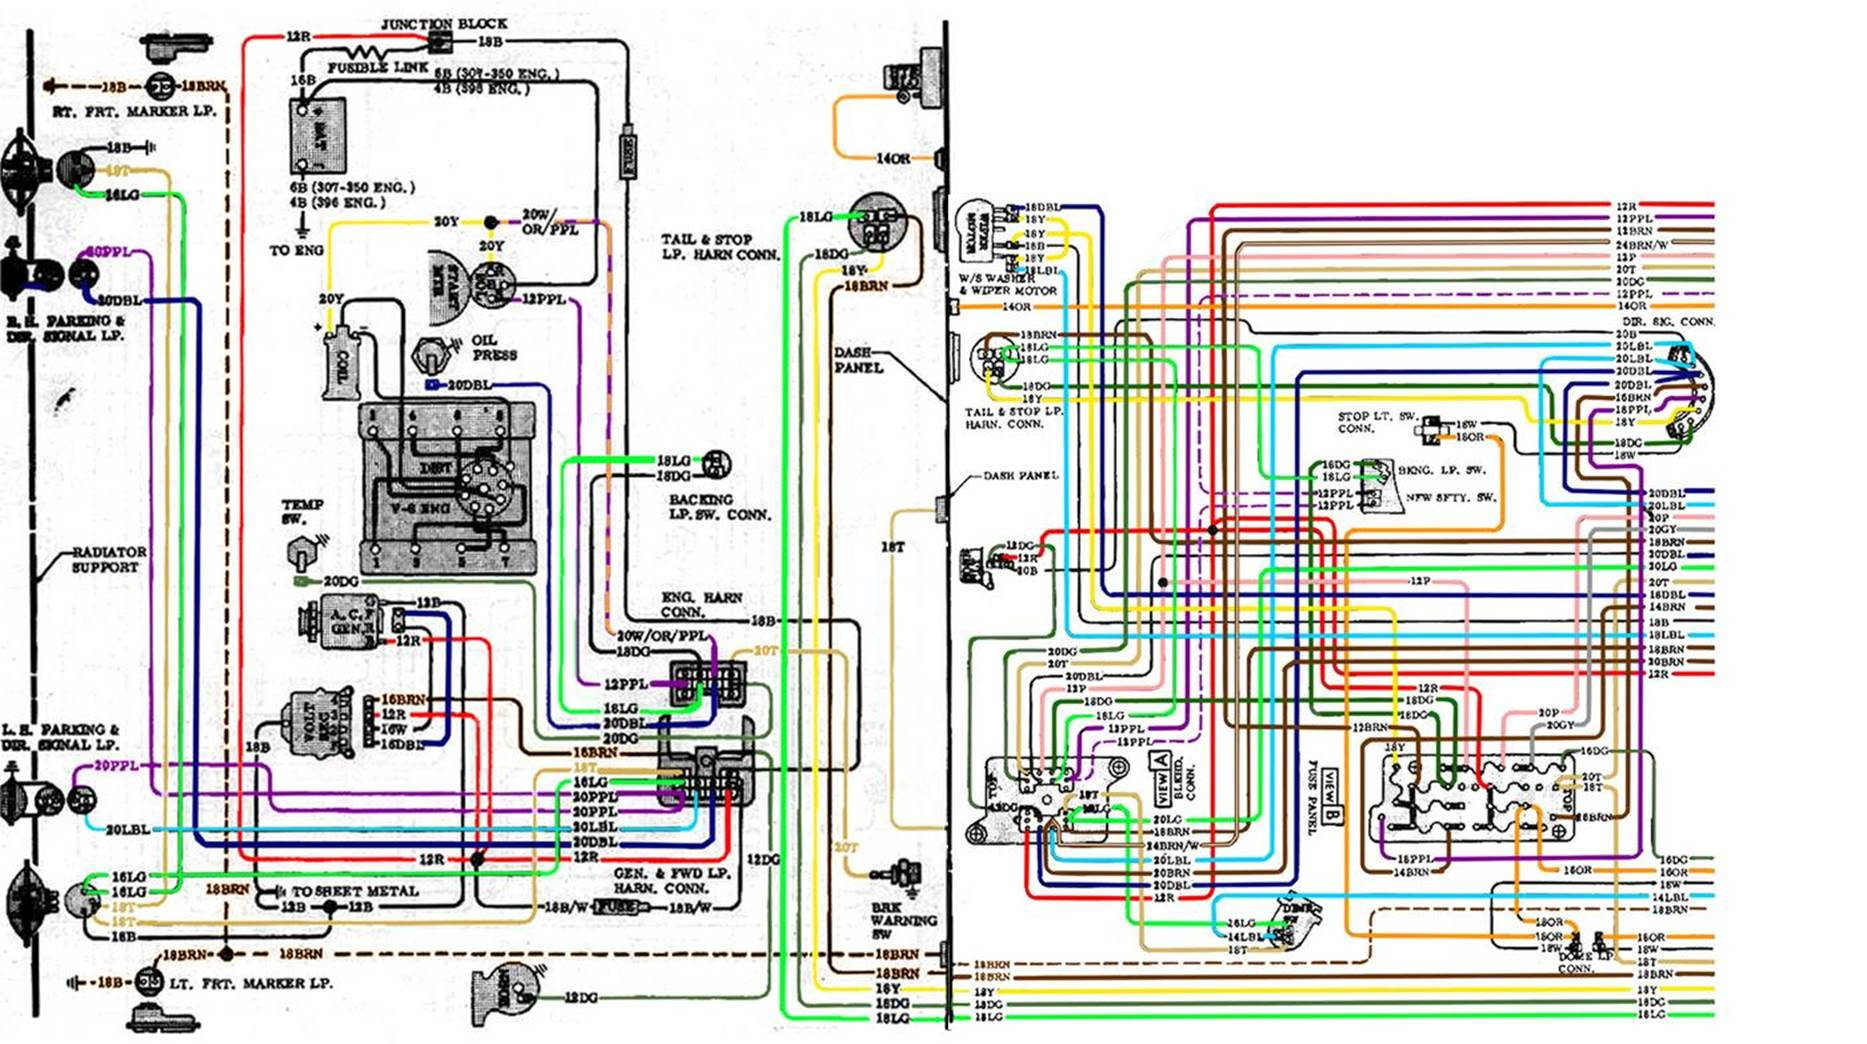 image002 72 c10 wiring diagram chevy truck wiring diagram \u2022 wiring diagrams painless wiring harness 10101 at eliteediting.co